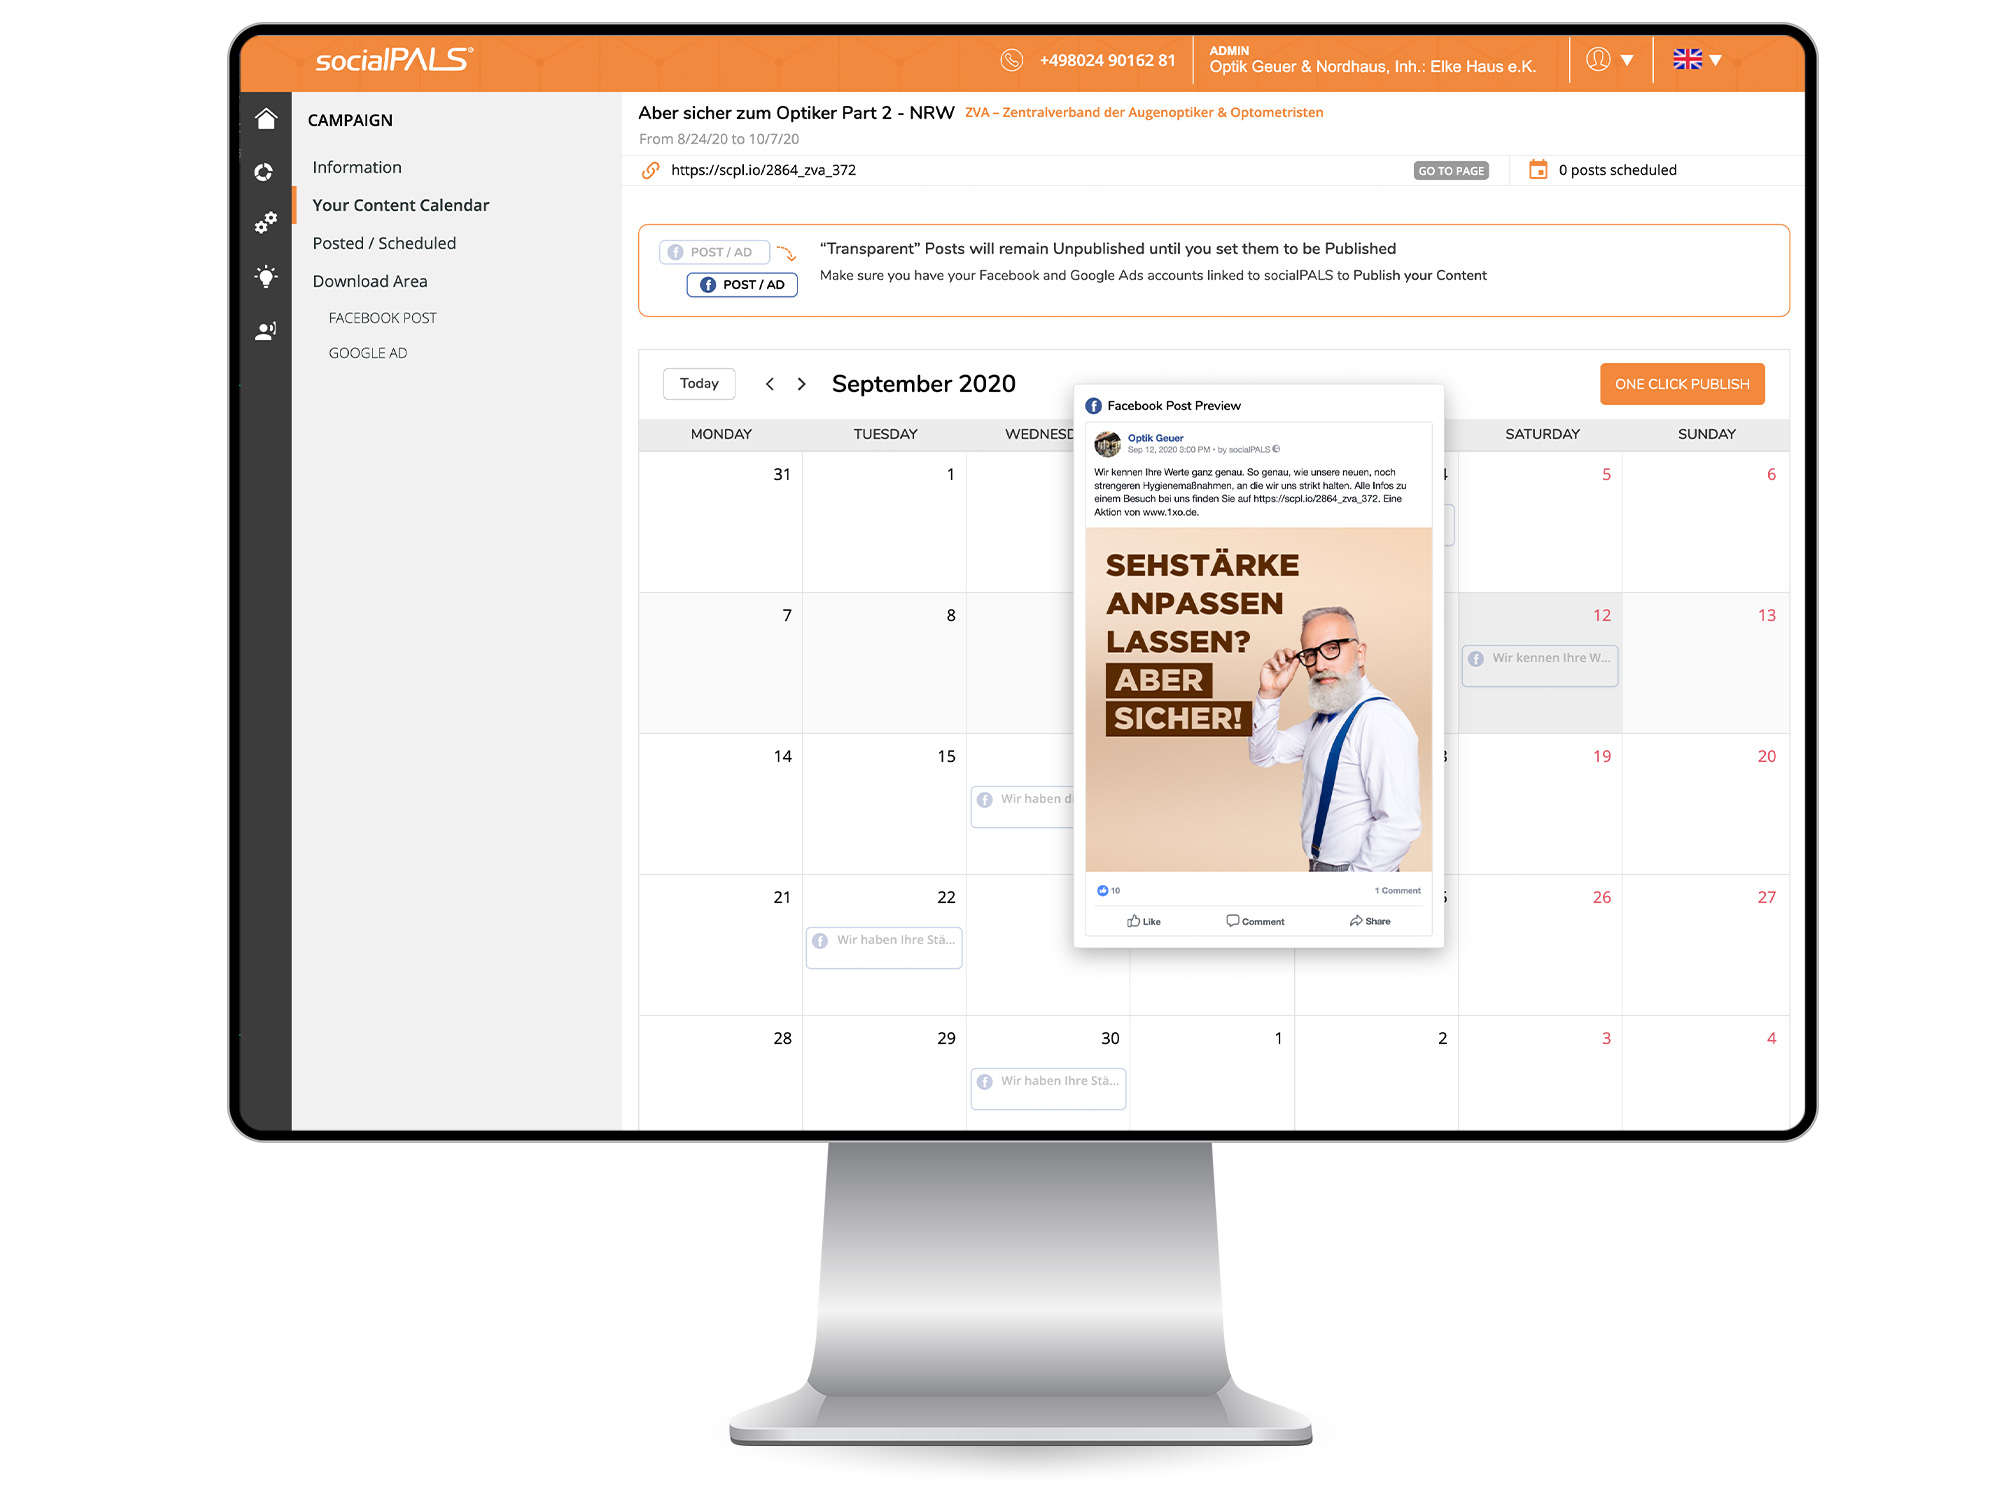 Dealers receive a ready-made editorial plan that can be adopted or customized immediately. Start via click.